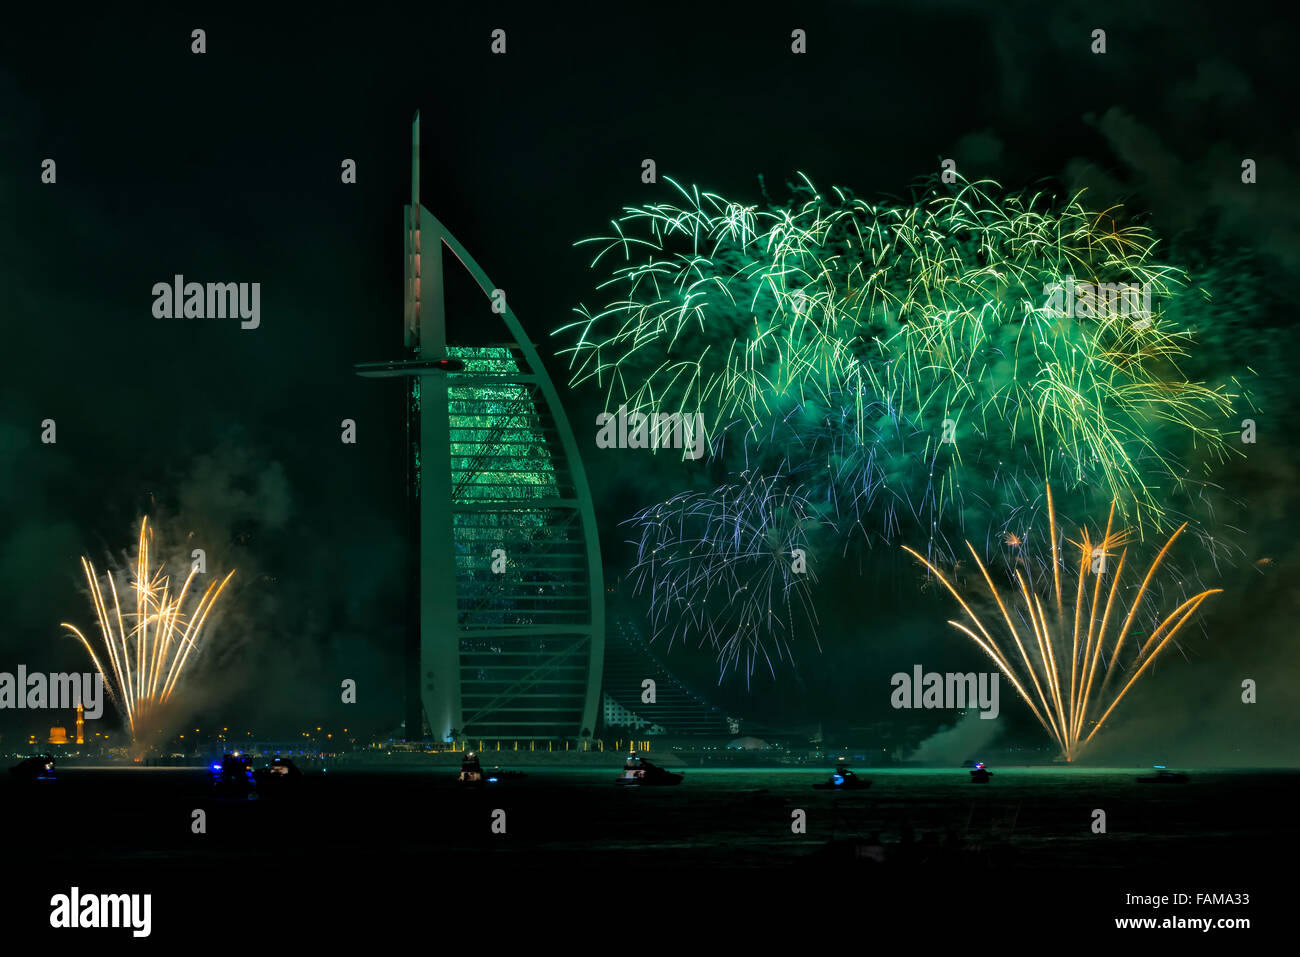 New Year 2015 Fireworks in Dubai, UAE - Stock Image